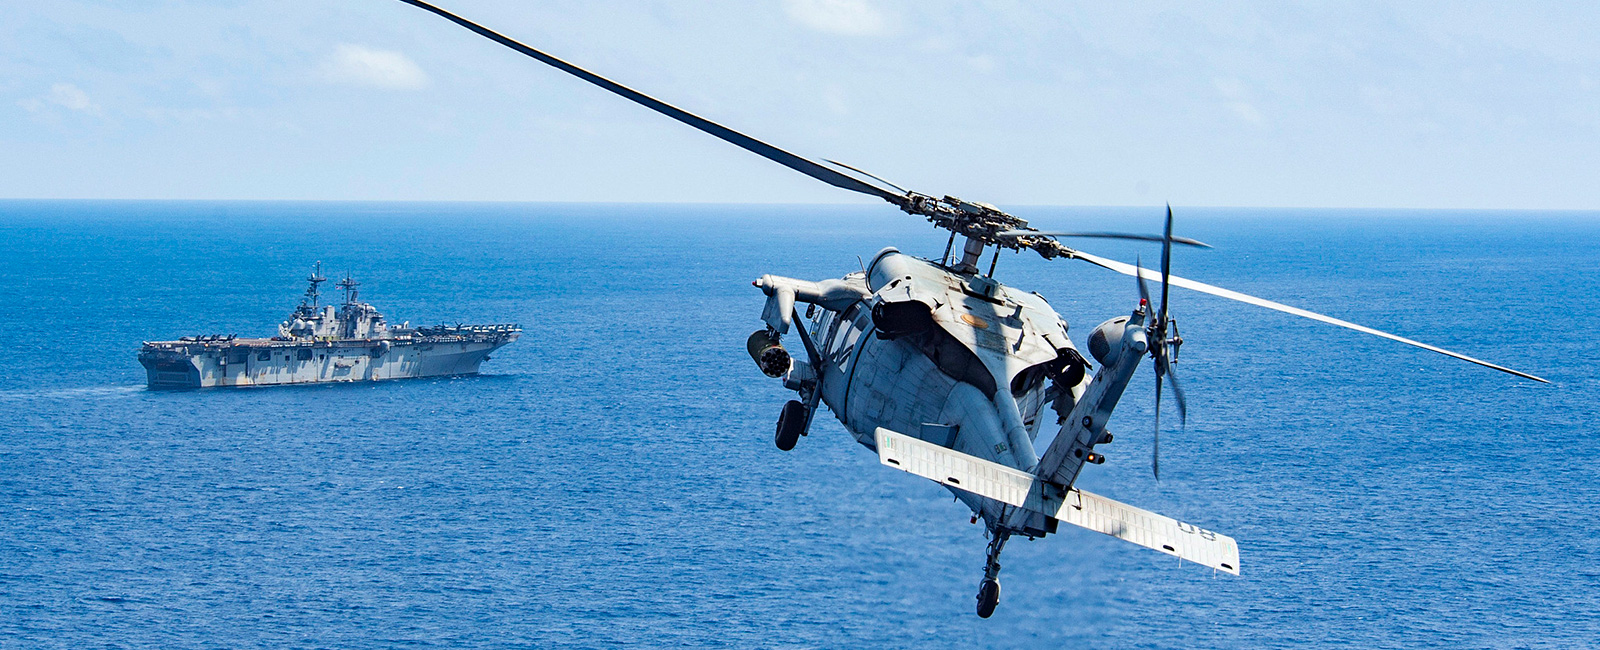 An MH-60S Sea Hawk attached to Helicopter Sea Combat Squadron 25 (HSC-25) approaches the amphibious assault ship USS Wasp (LHD 1).